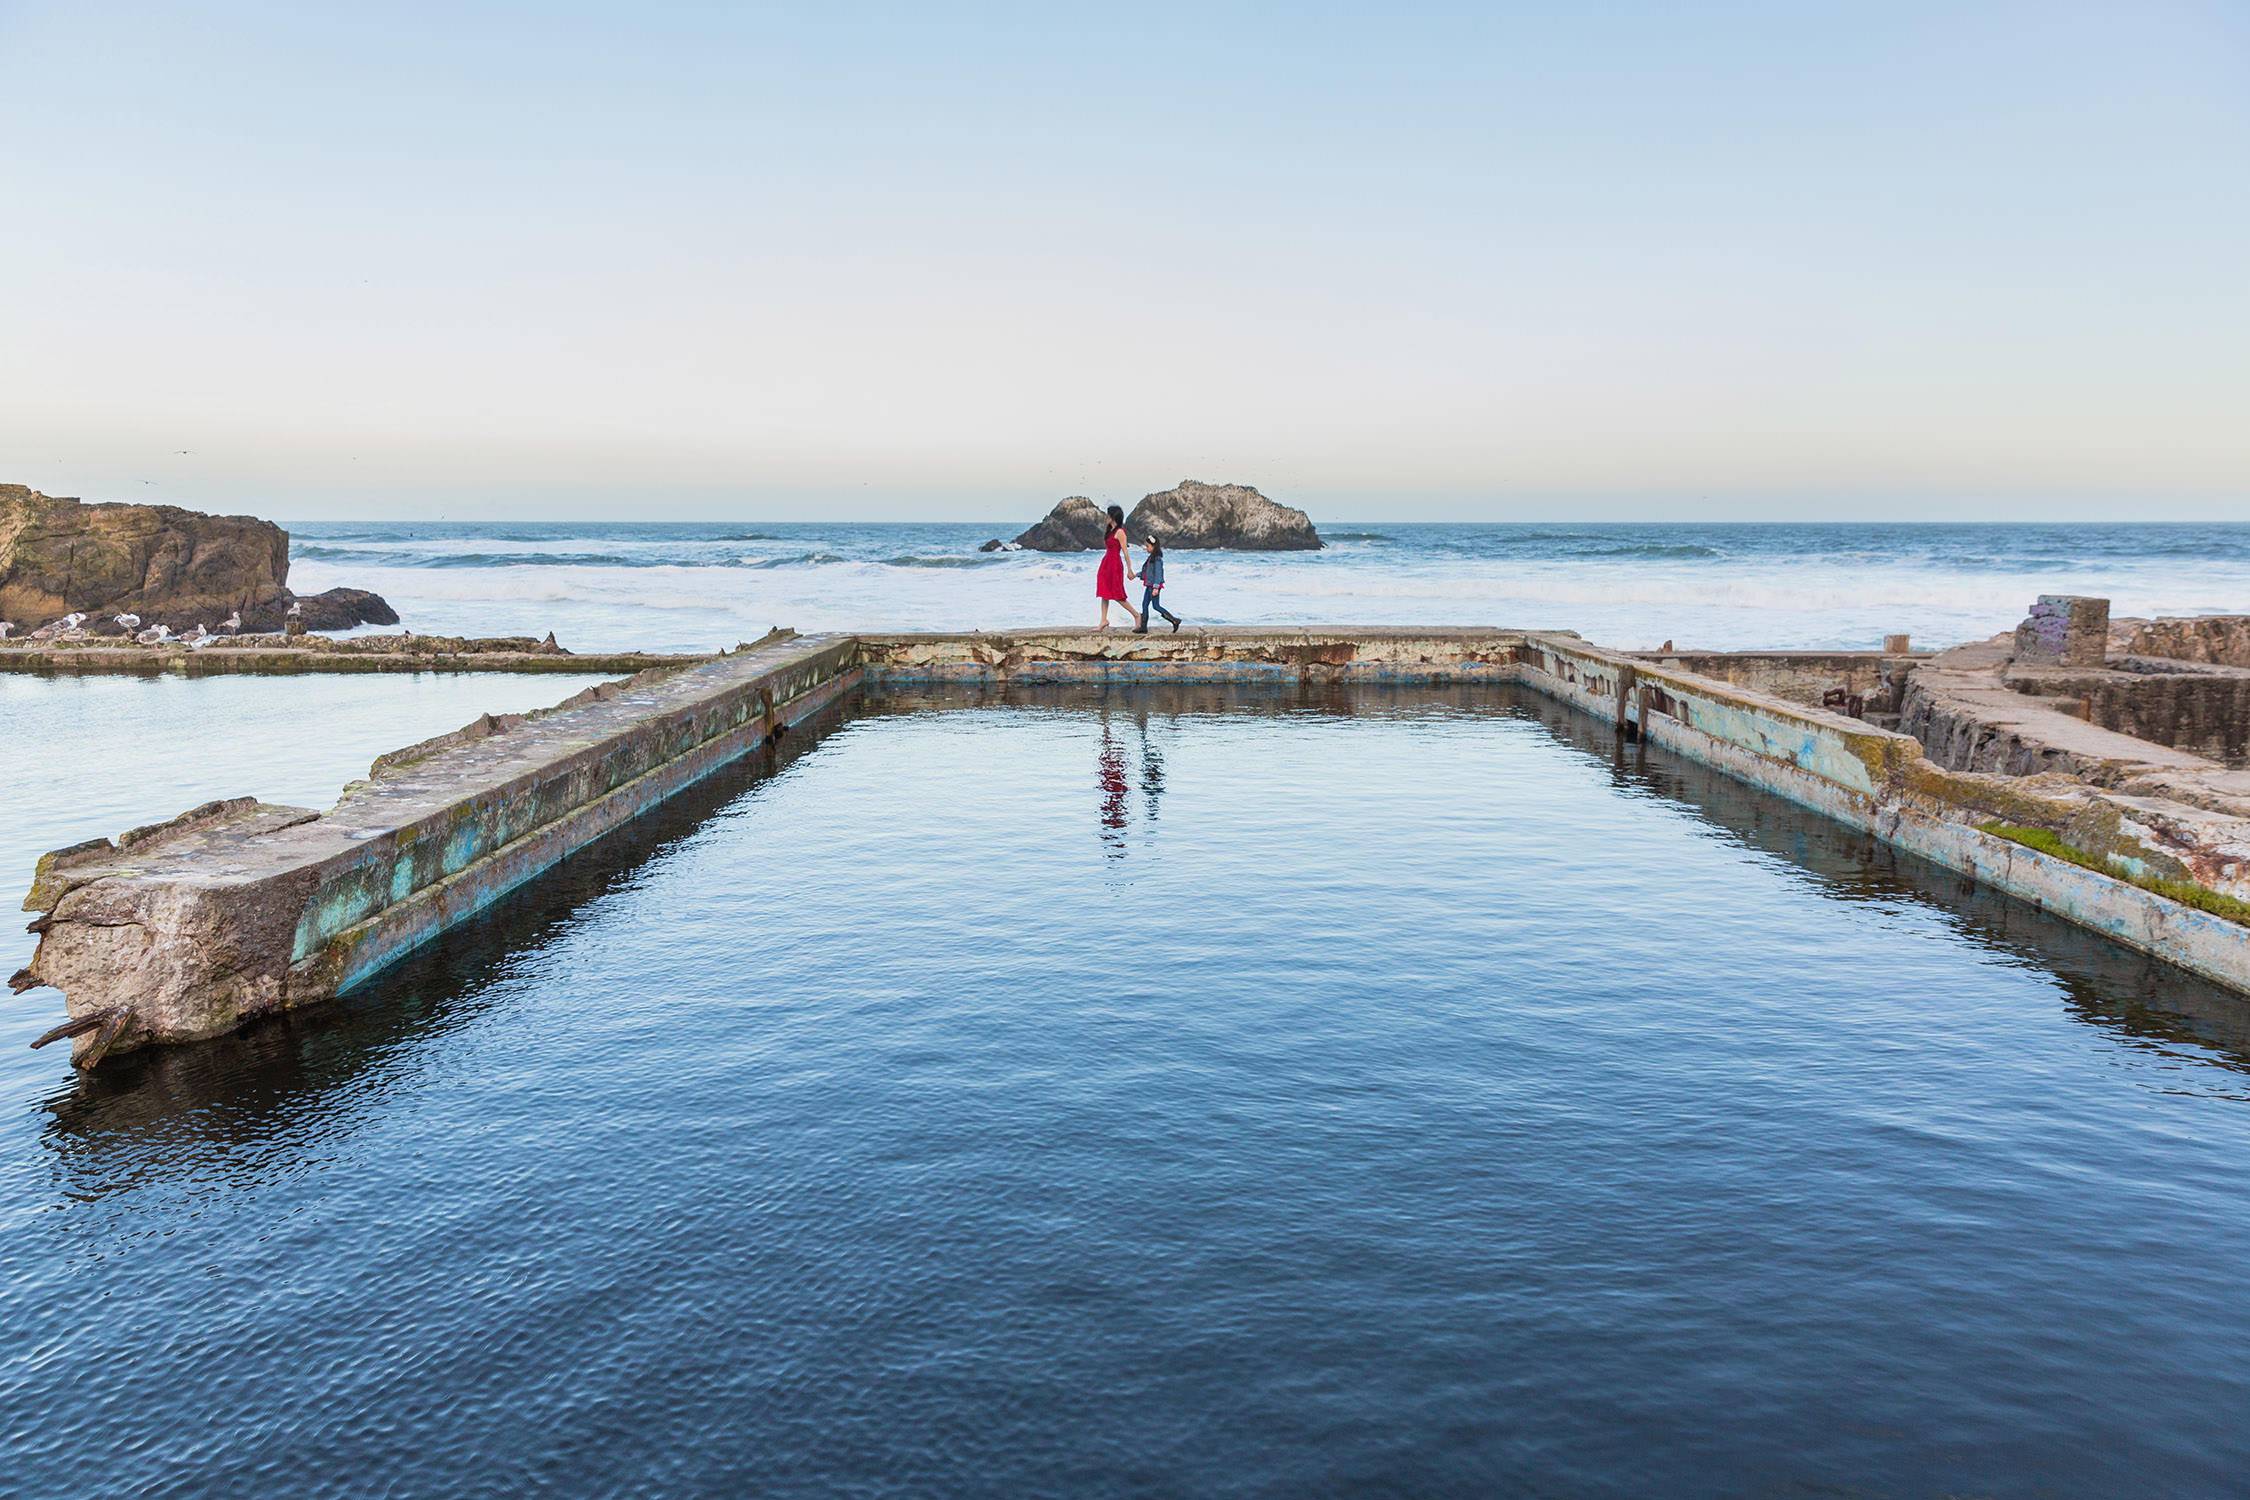 Portrait session at Sutro Baths in San Francisco, California